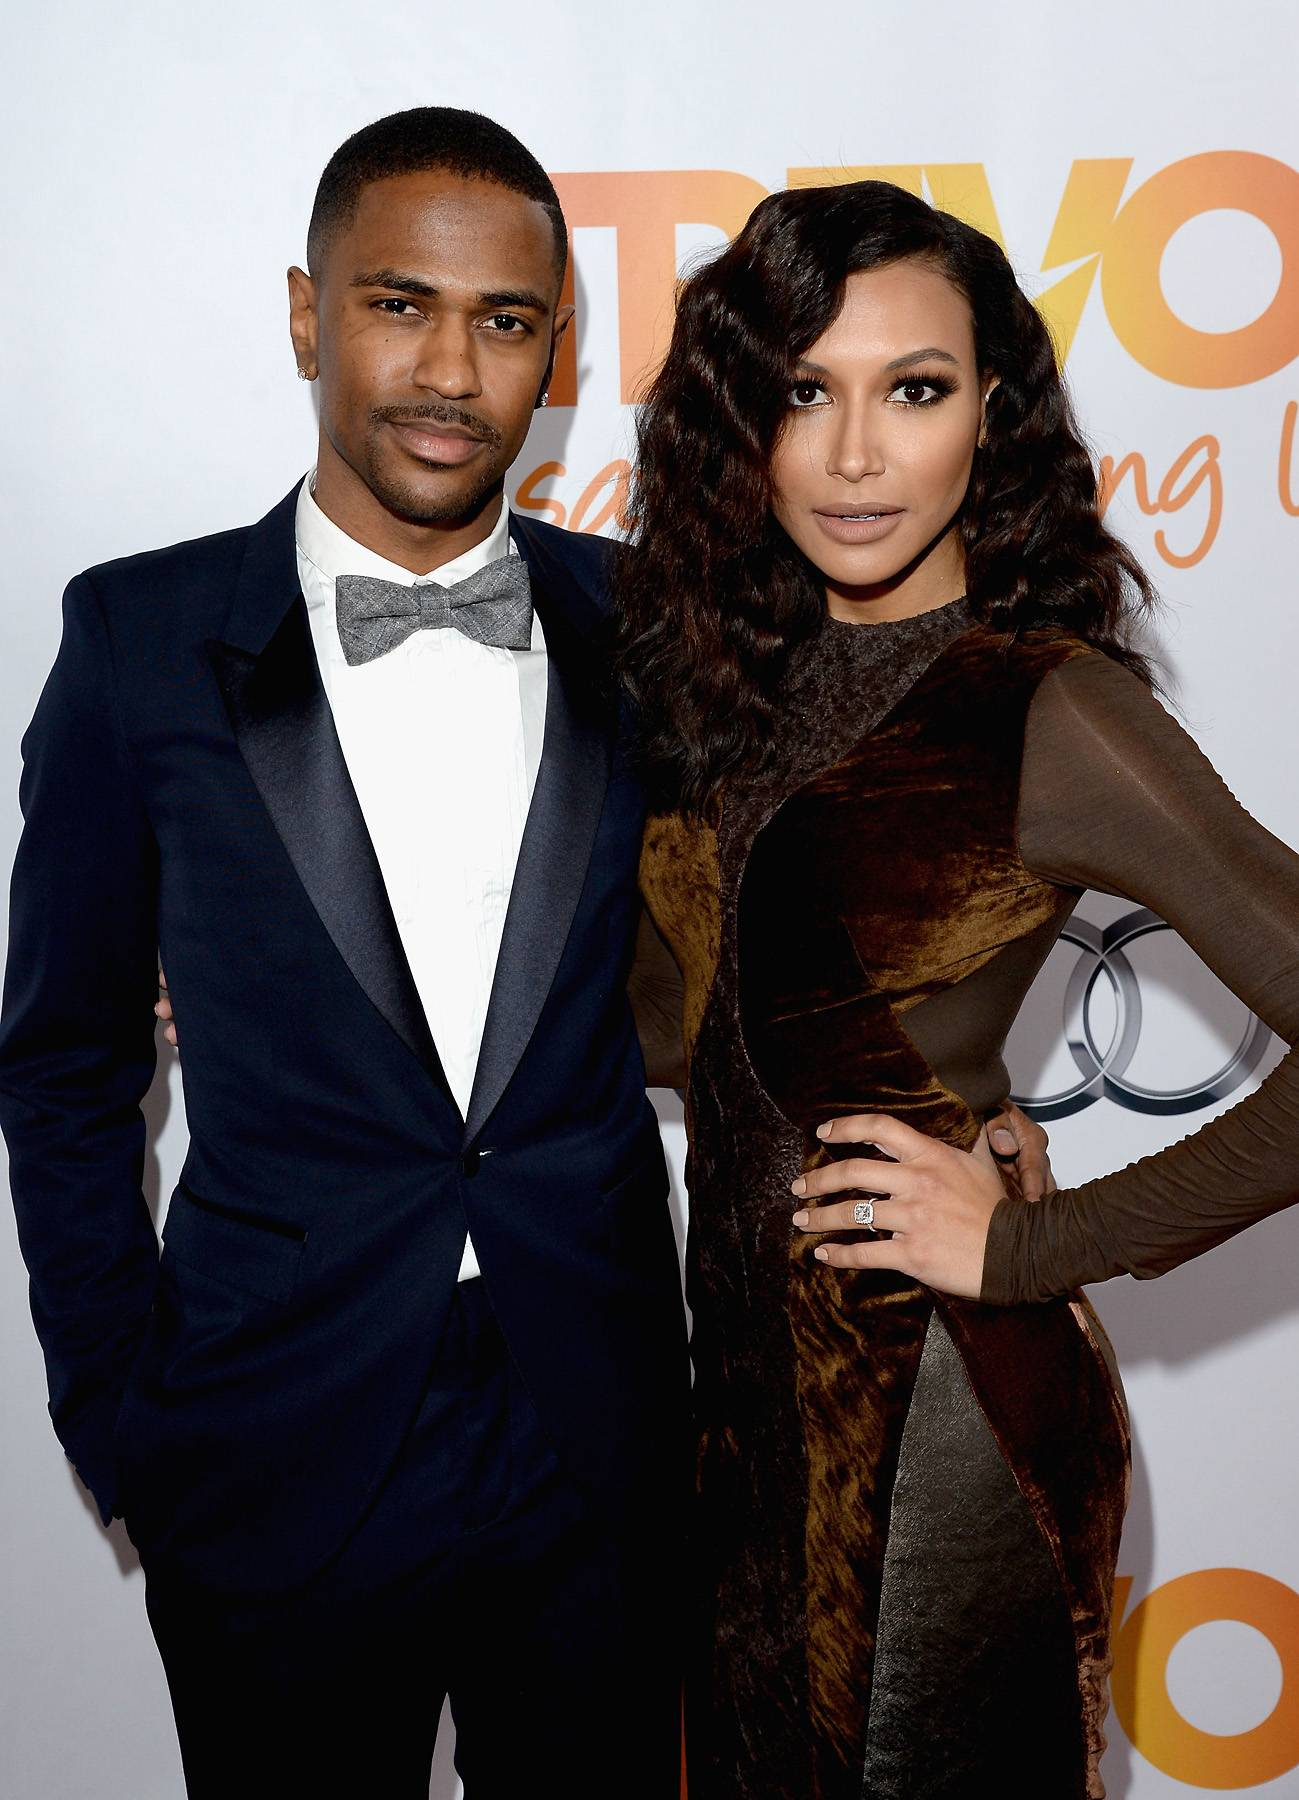 """Naya Rivera Blasts Big Sean - Ironically, former Glee star Naya Riveraborrowed lyrics from her then-fiancé Big Seanto accuse the rapper of stealing in a tweet that went viral despite it being deleted.Tweet: """"@bigsean stealing rolexes from a lady's house now. Maybe cuz I'm on Glee and making more money or something. #triflin.""""(Photo: Jason Merritt/Getty Images for Trevor Project)"""